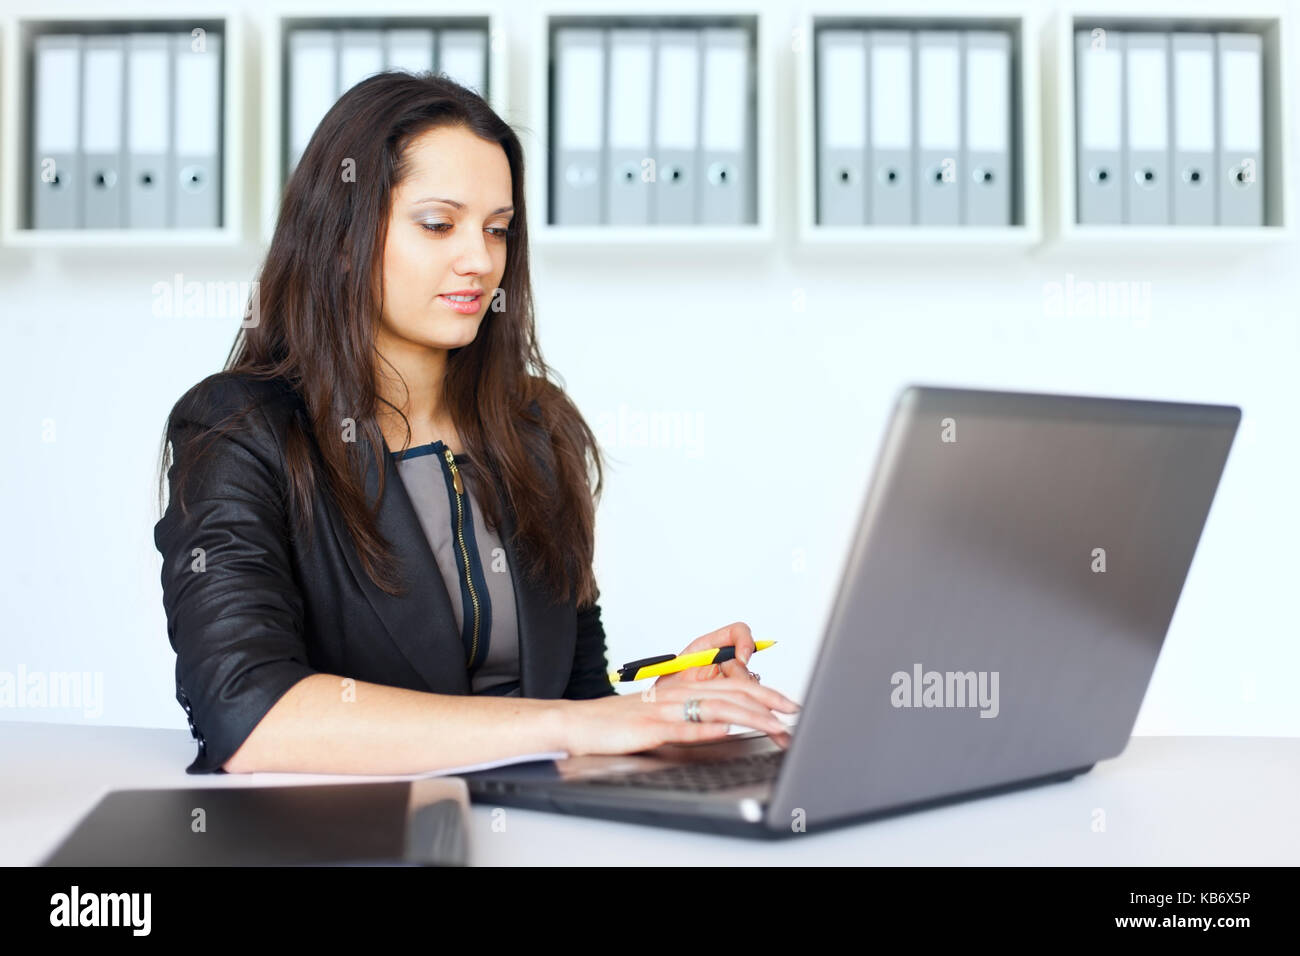 Portrait of beautiful young brunette business woman working on a laptop in office - Stock Image